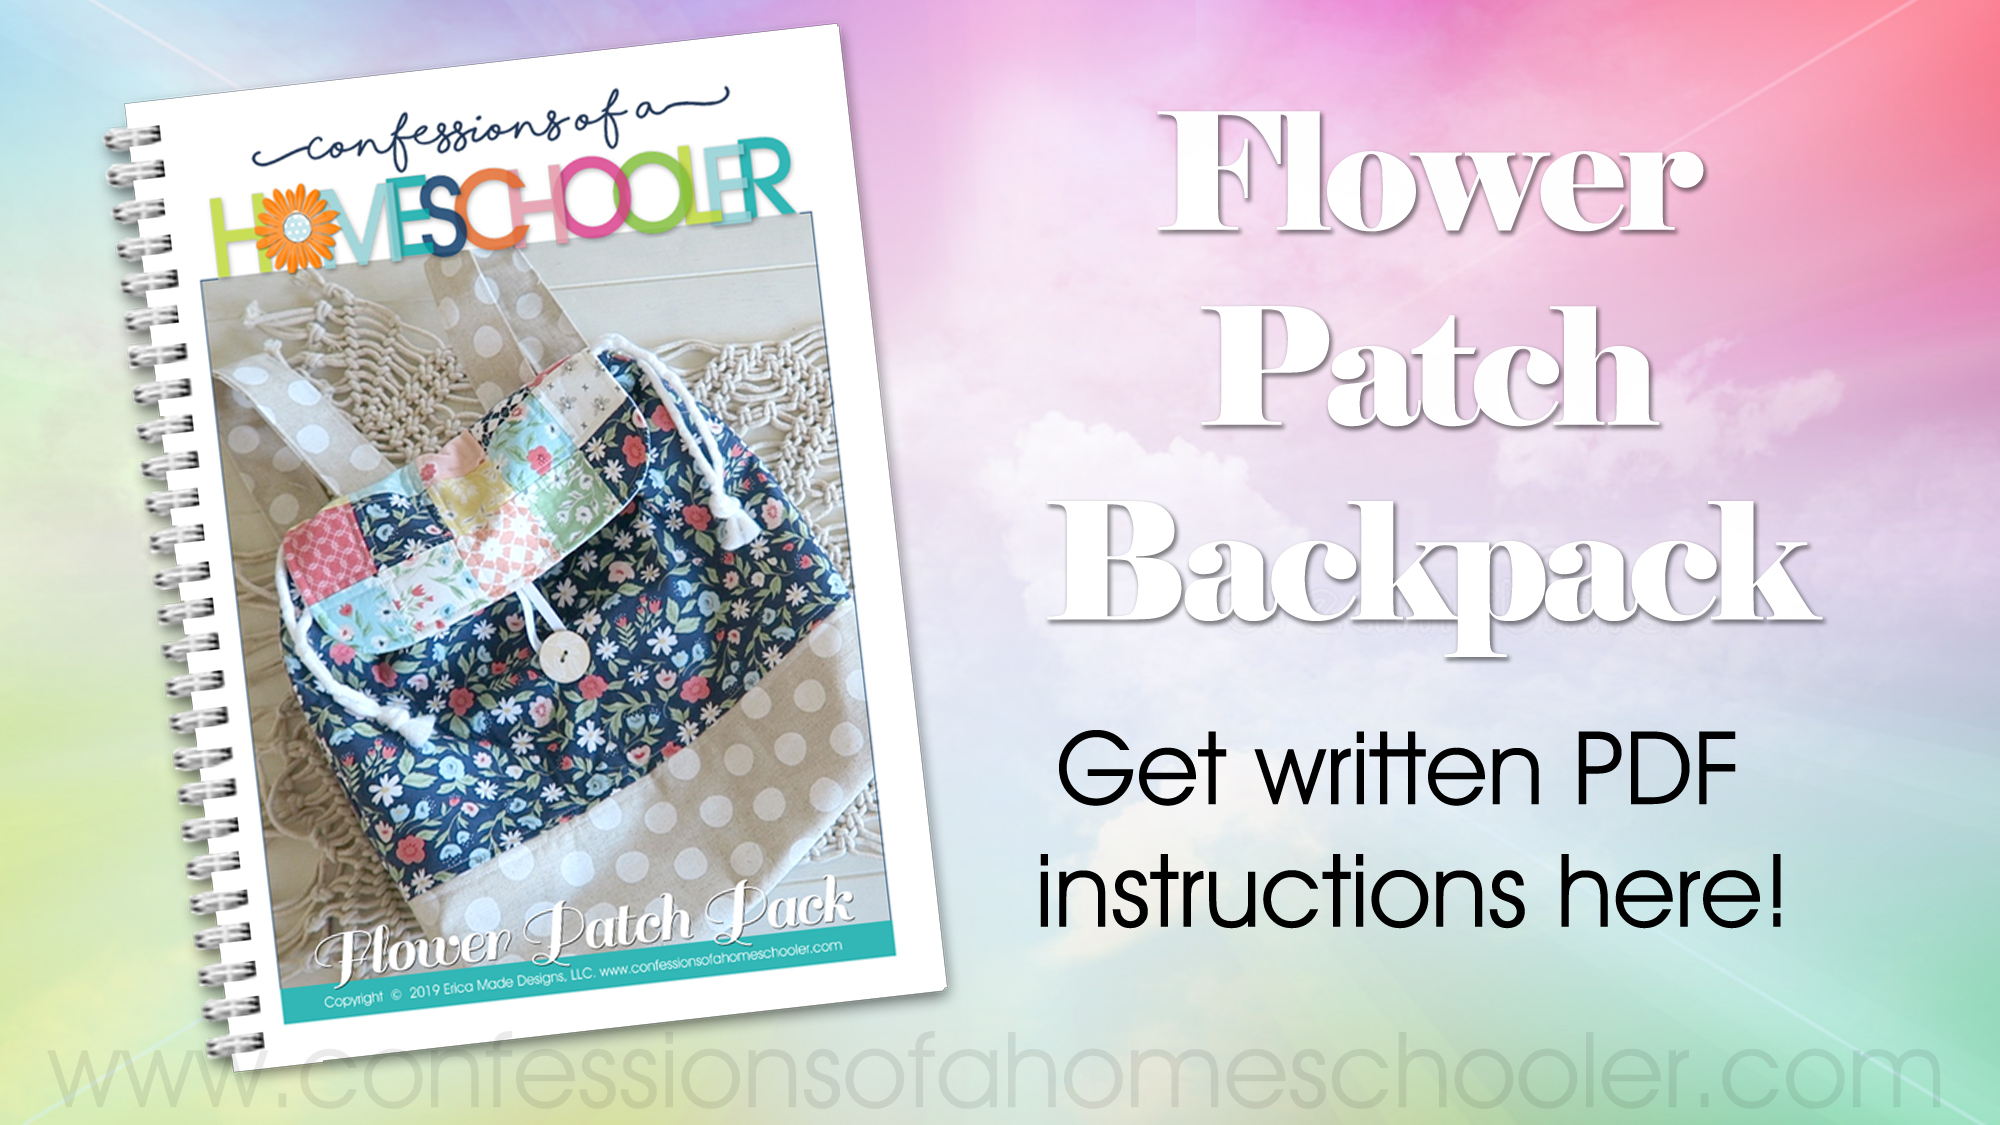 Flower Patch Back Pack Sewing Tutorial - Confessions of a